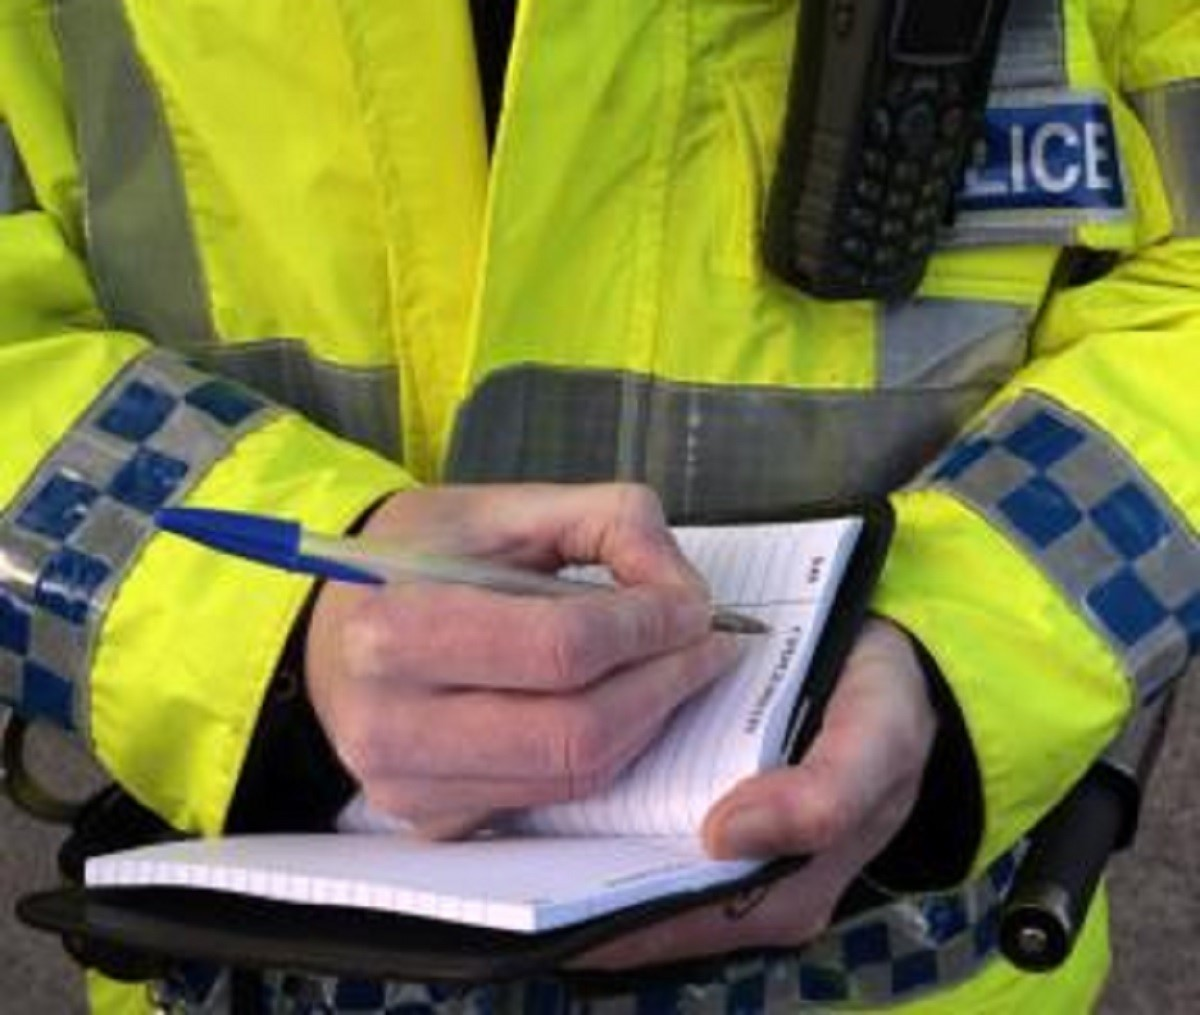 Police taking calls on mental health issues every two minutes, watchdog warns